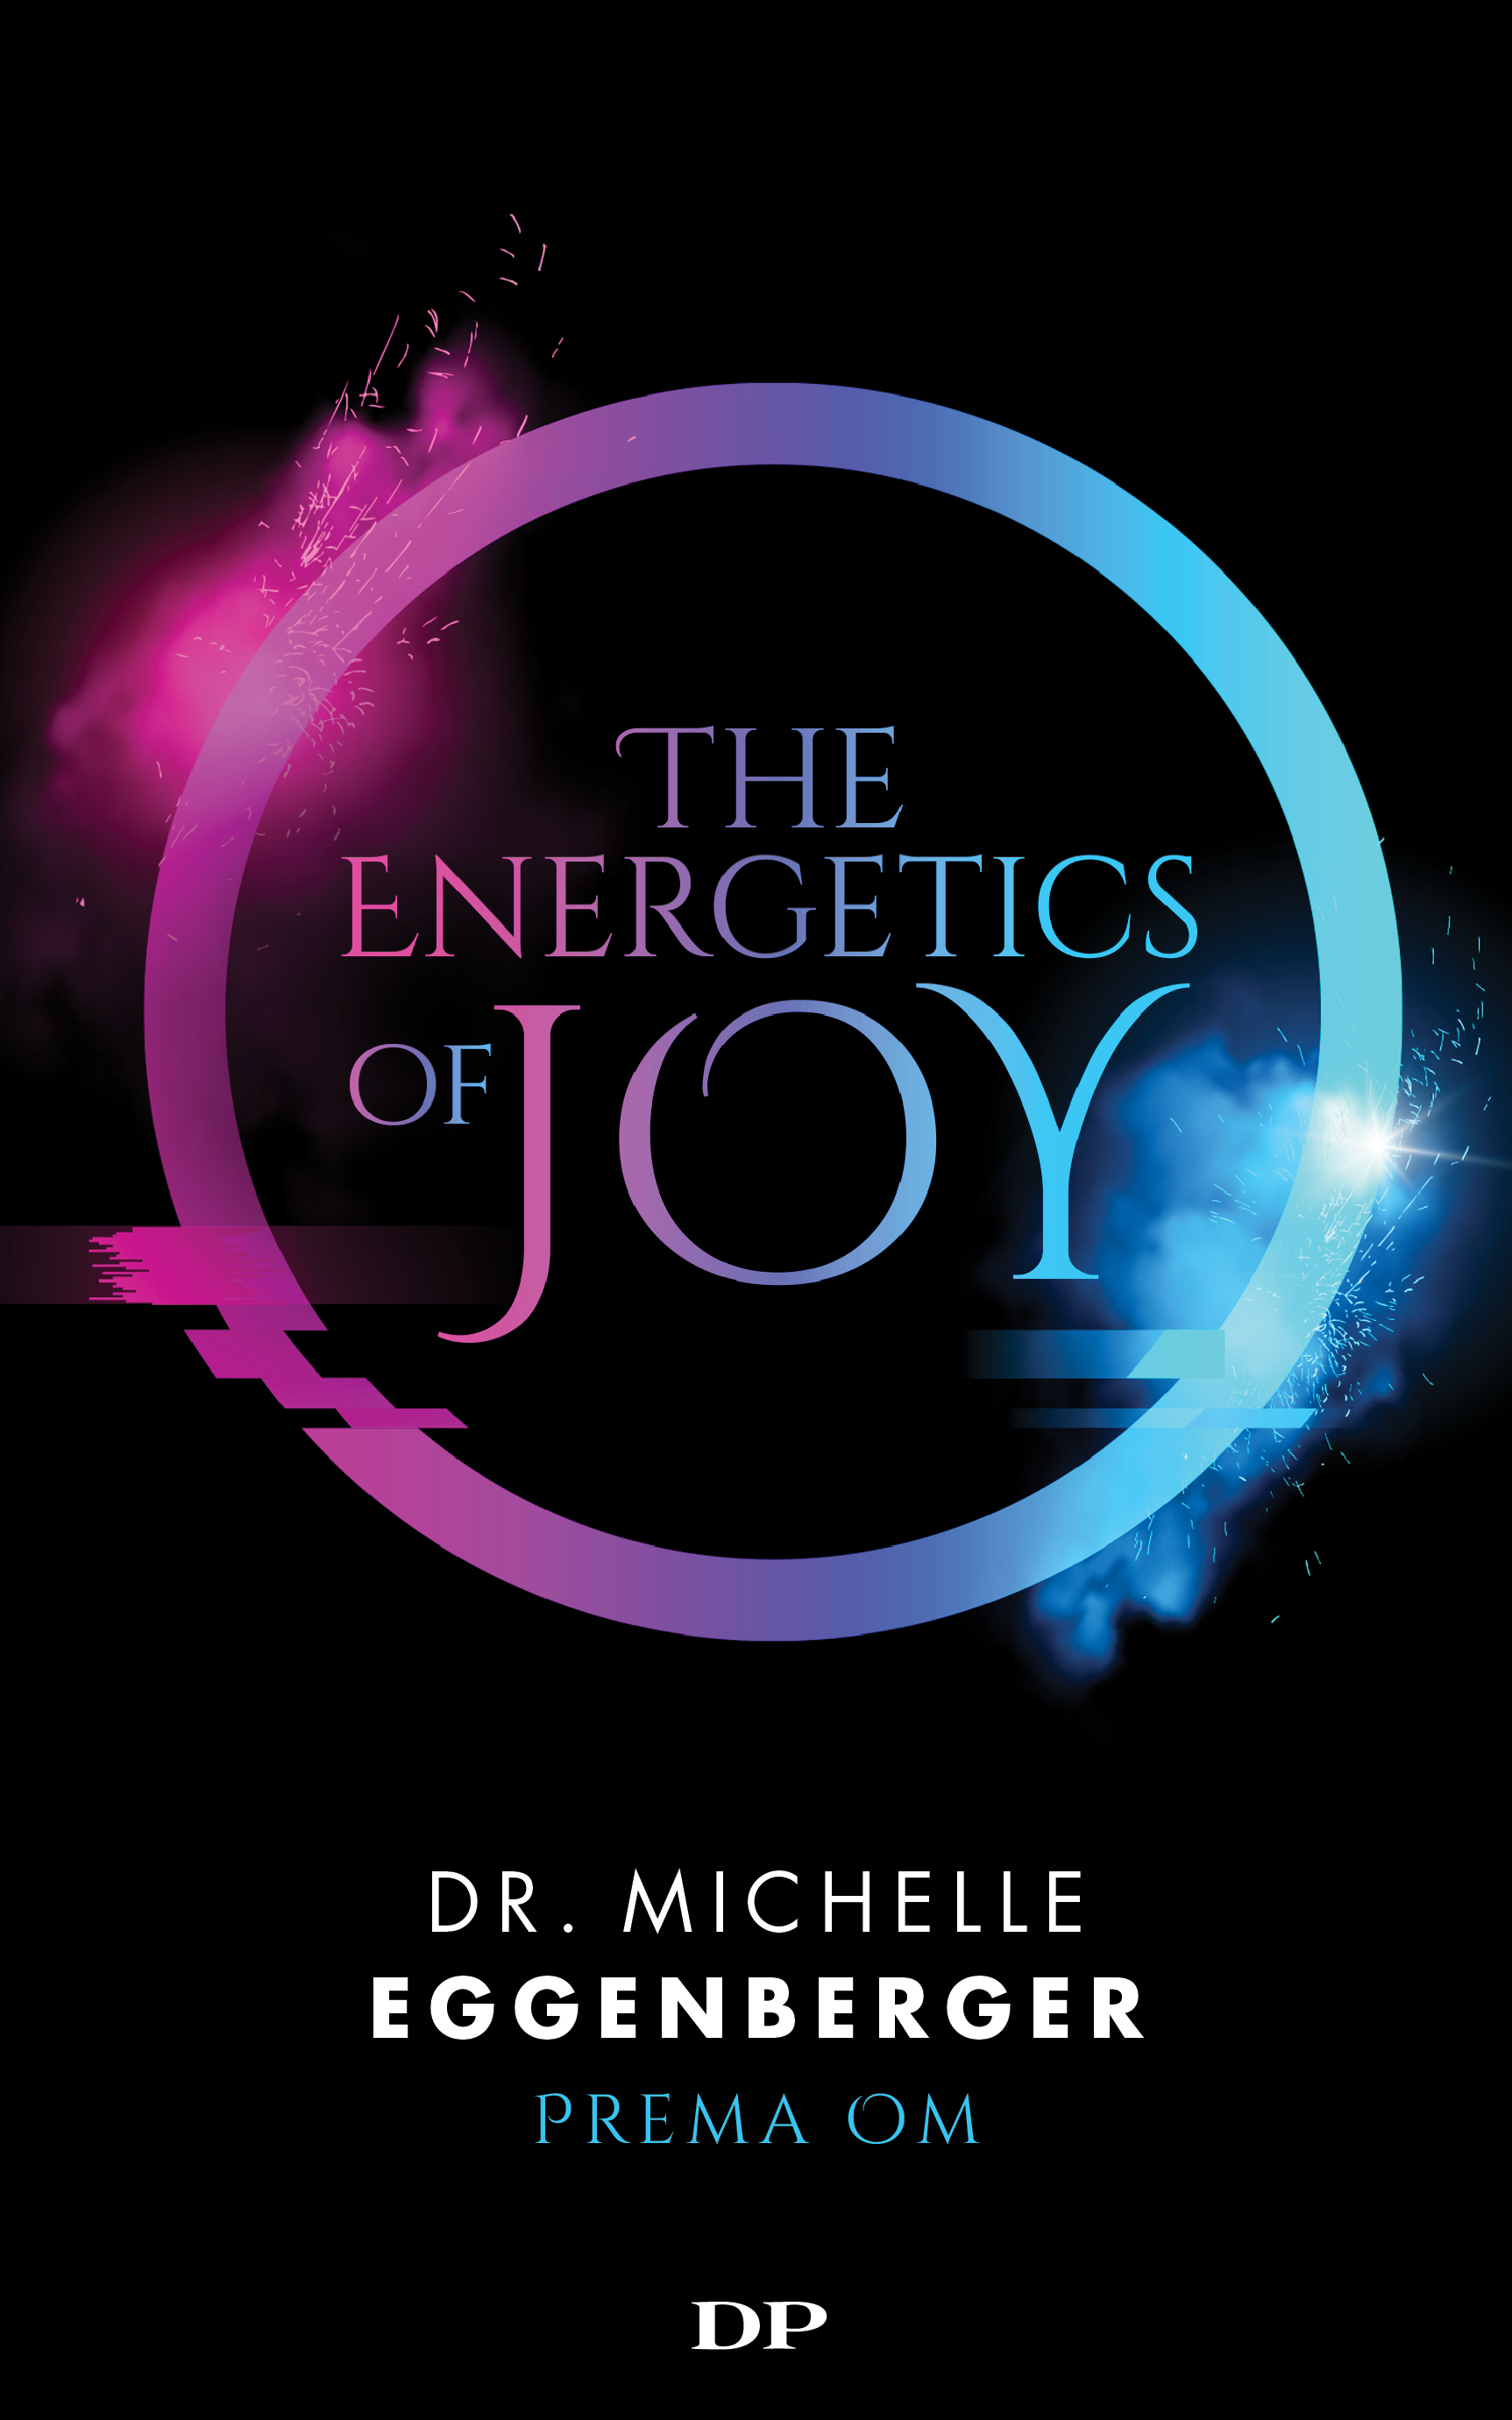 The Energetics of Joy